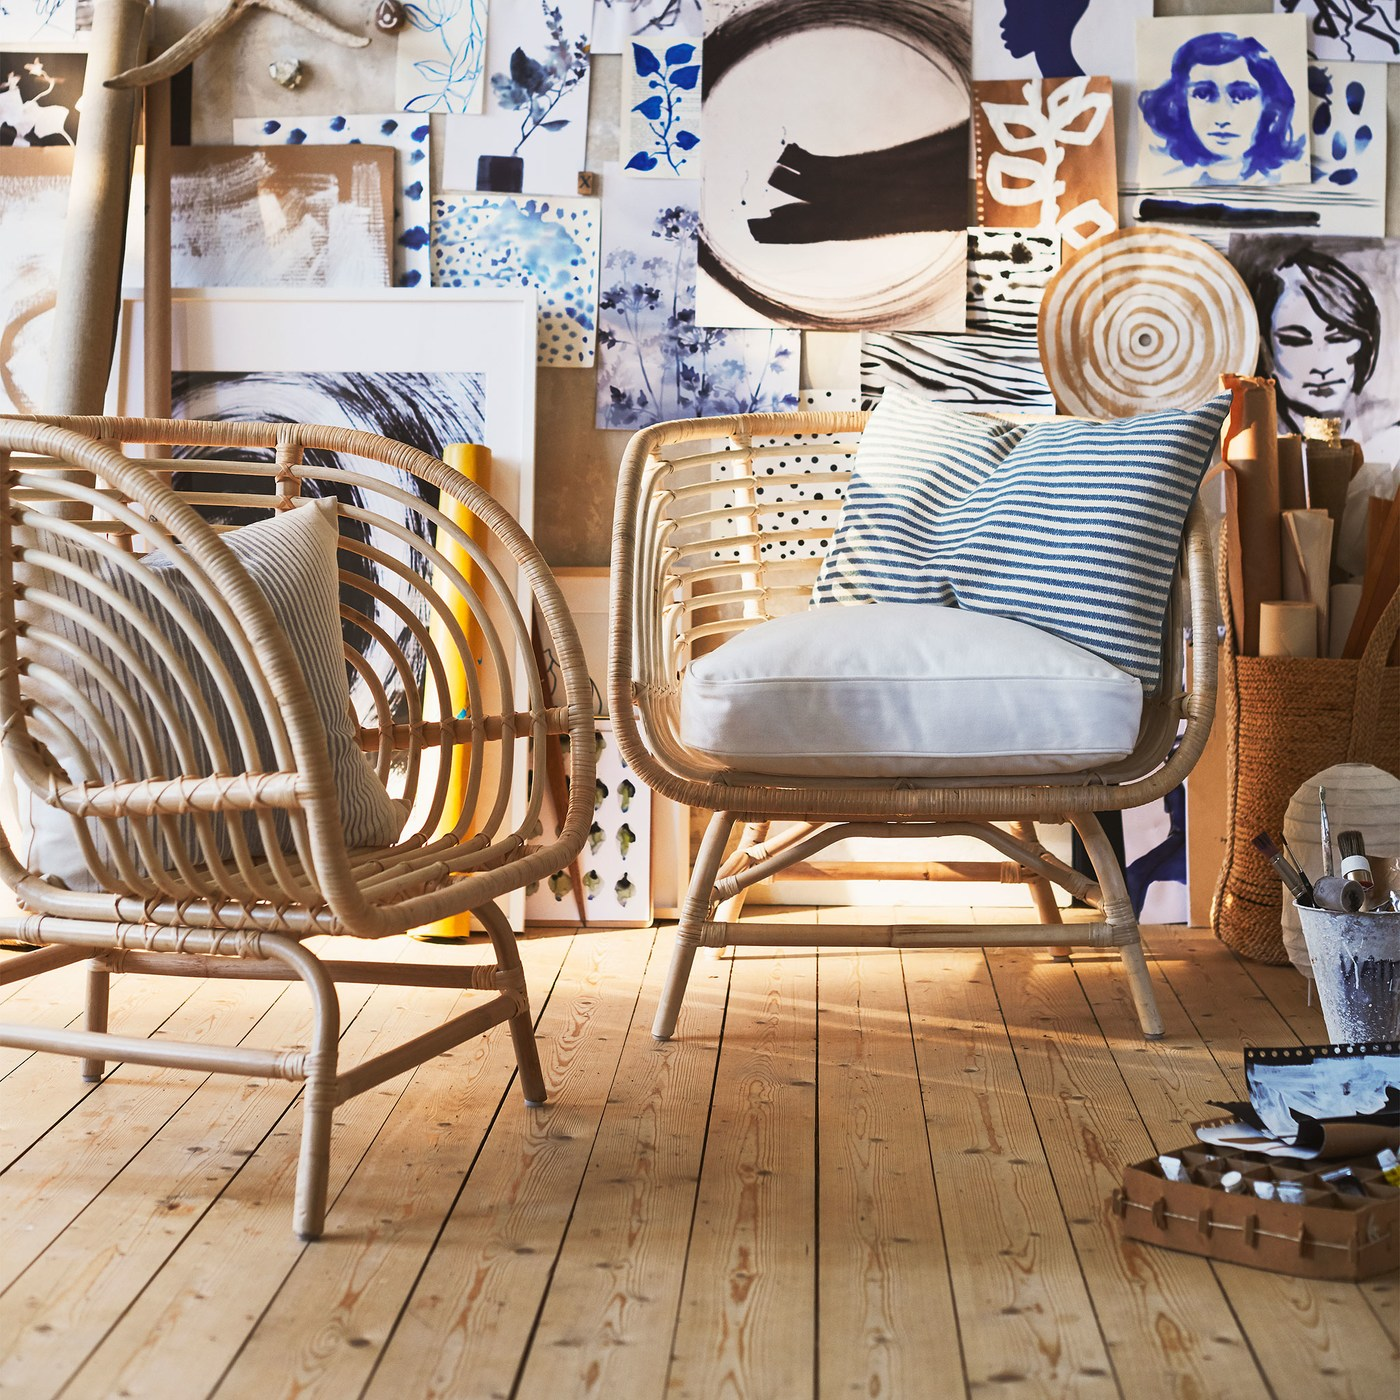 Sit back and relax with rattan seating - IKEA